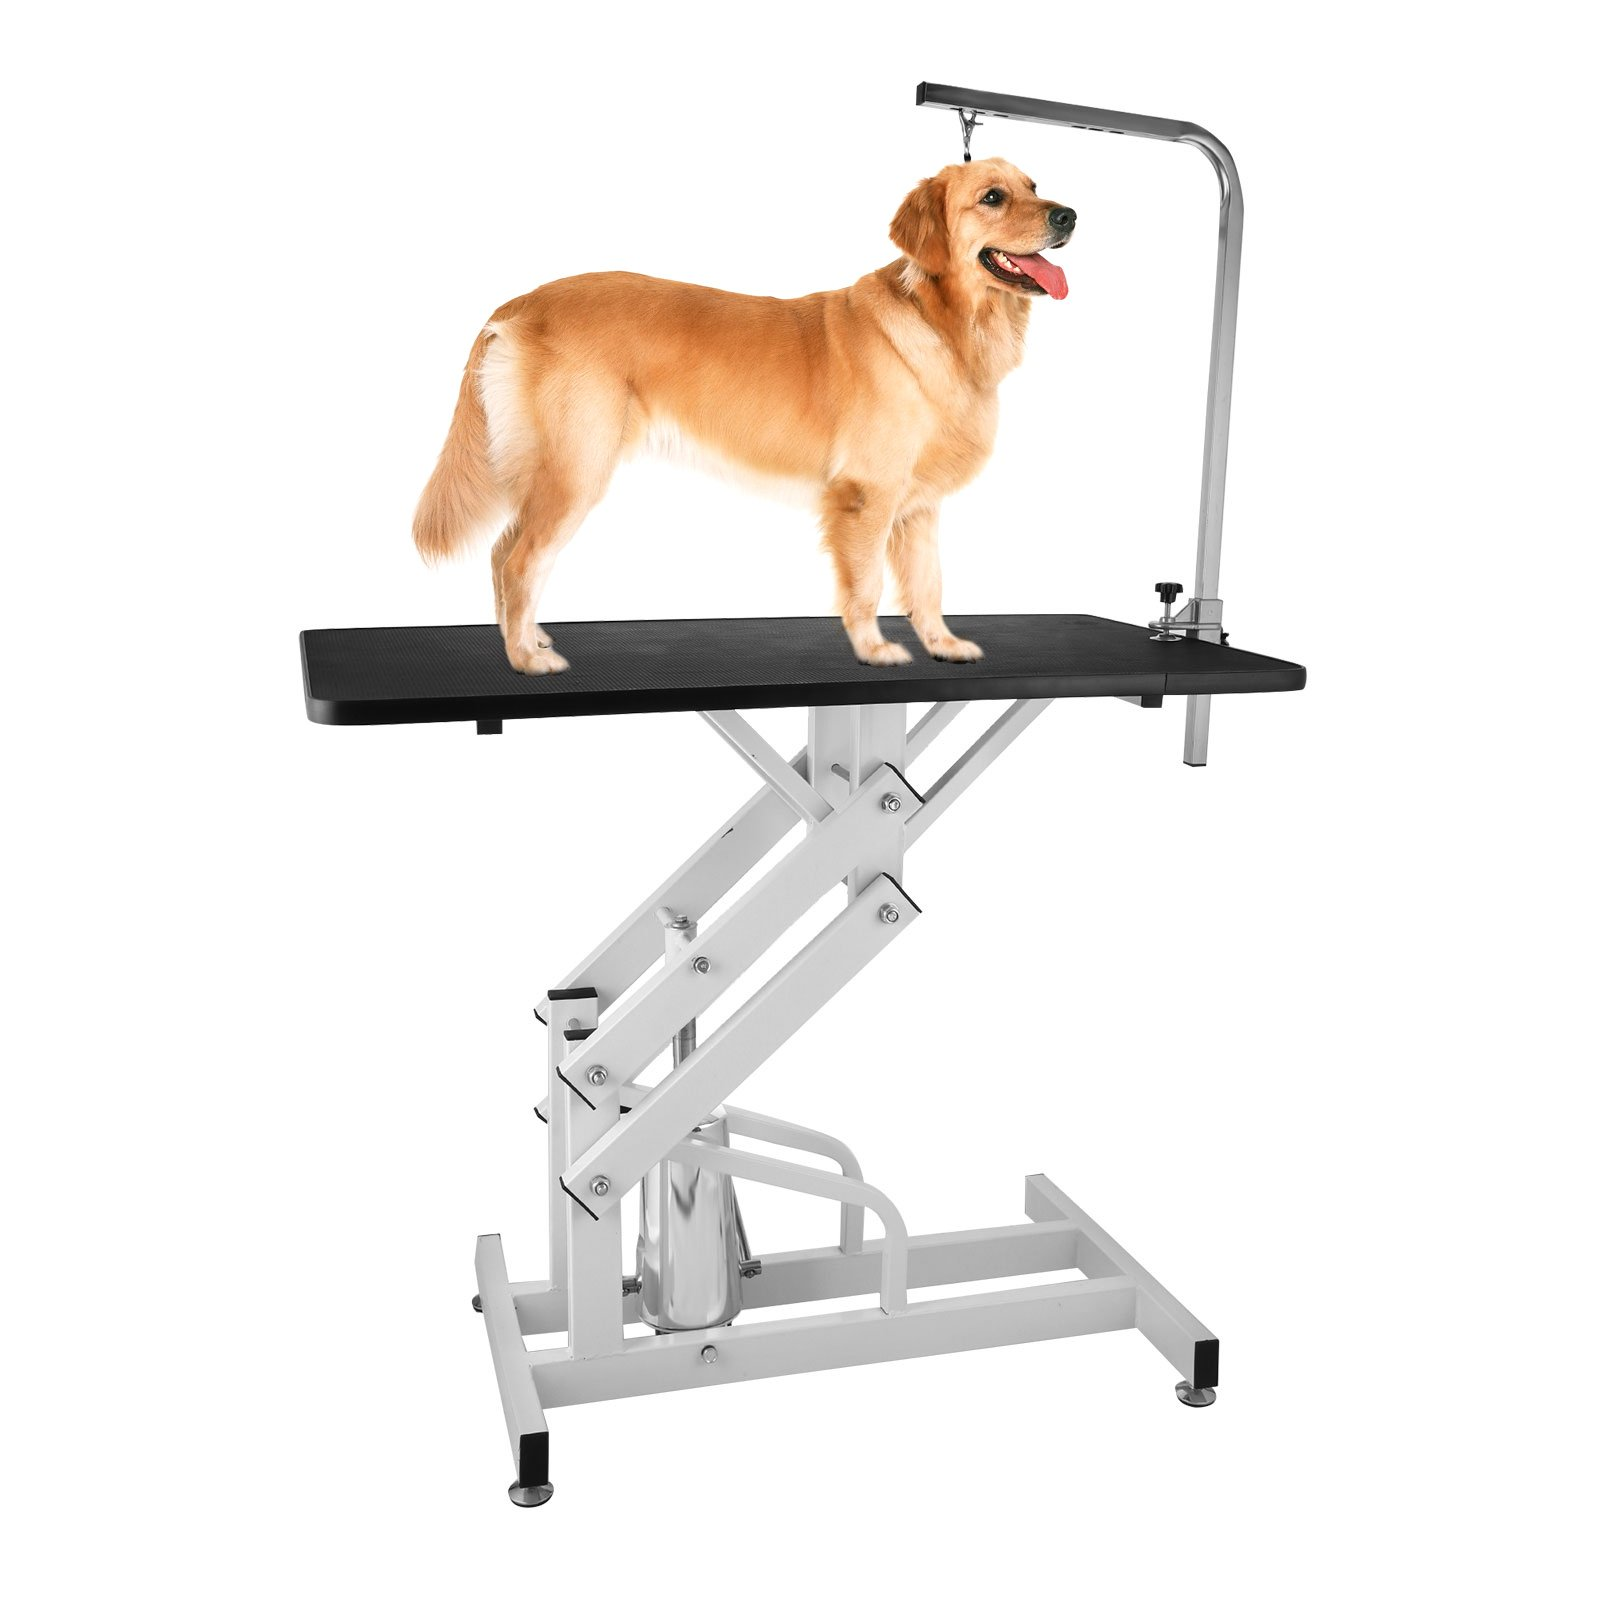 PETPAL Z-Lift Hydraulic Grooming Table 42.5 x 23.6 inches Pet Grooming Table Height Adjustable Pet Lift Grooming Table 220 LBS Weight Capacity (Black)